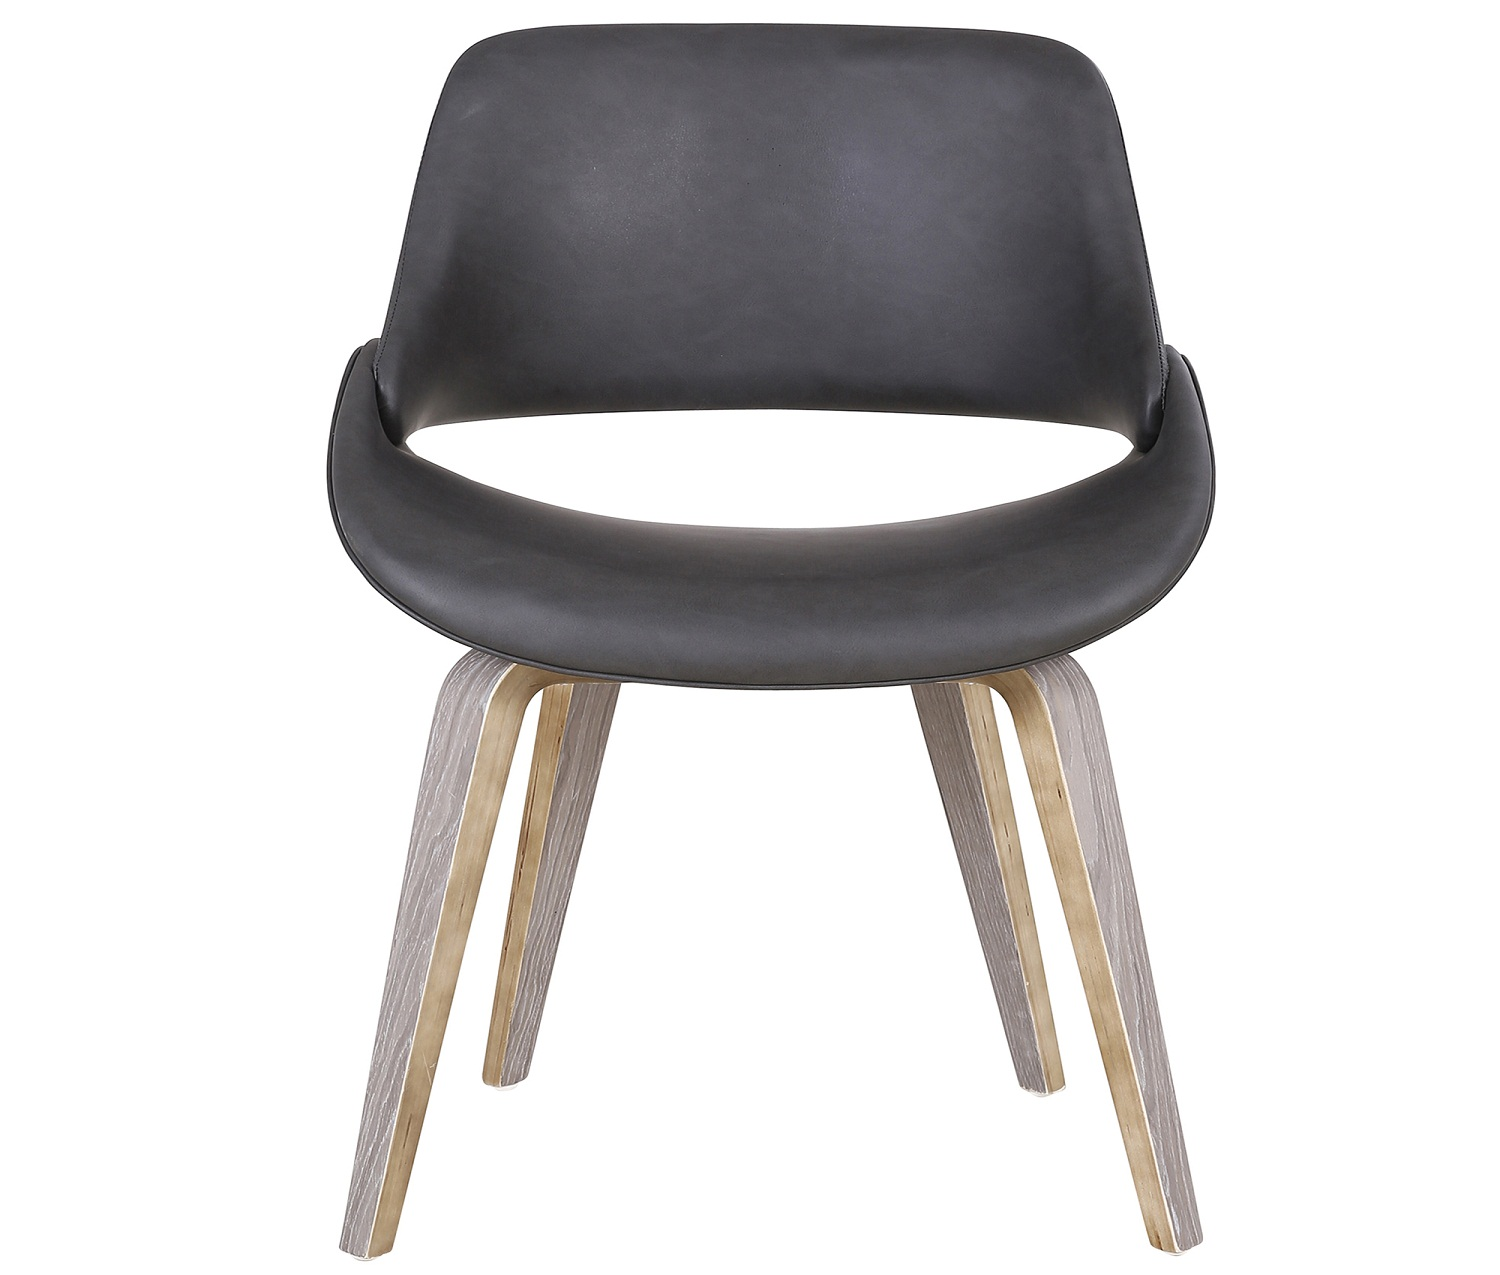 SERANO-ACCENT CHAIR-CHARCOAL, 841173032760, Accent Chairs, SERANO-ACCENT CHAIR-CHARCOAL from Dropship by Midha Furniture serving Brampton, Mississauga, Etobicoke, Toronto, Scraborough, Caledon, Cambridge, Oakville, Markham, Ajax, Pickering, Oshawa, Richmondhill, Kitchener, Hamilton, Cambridge, Waterloo and GTA area